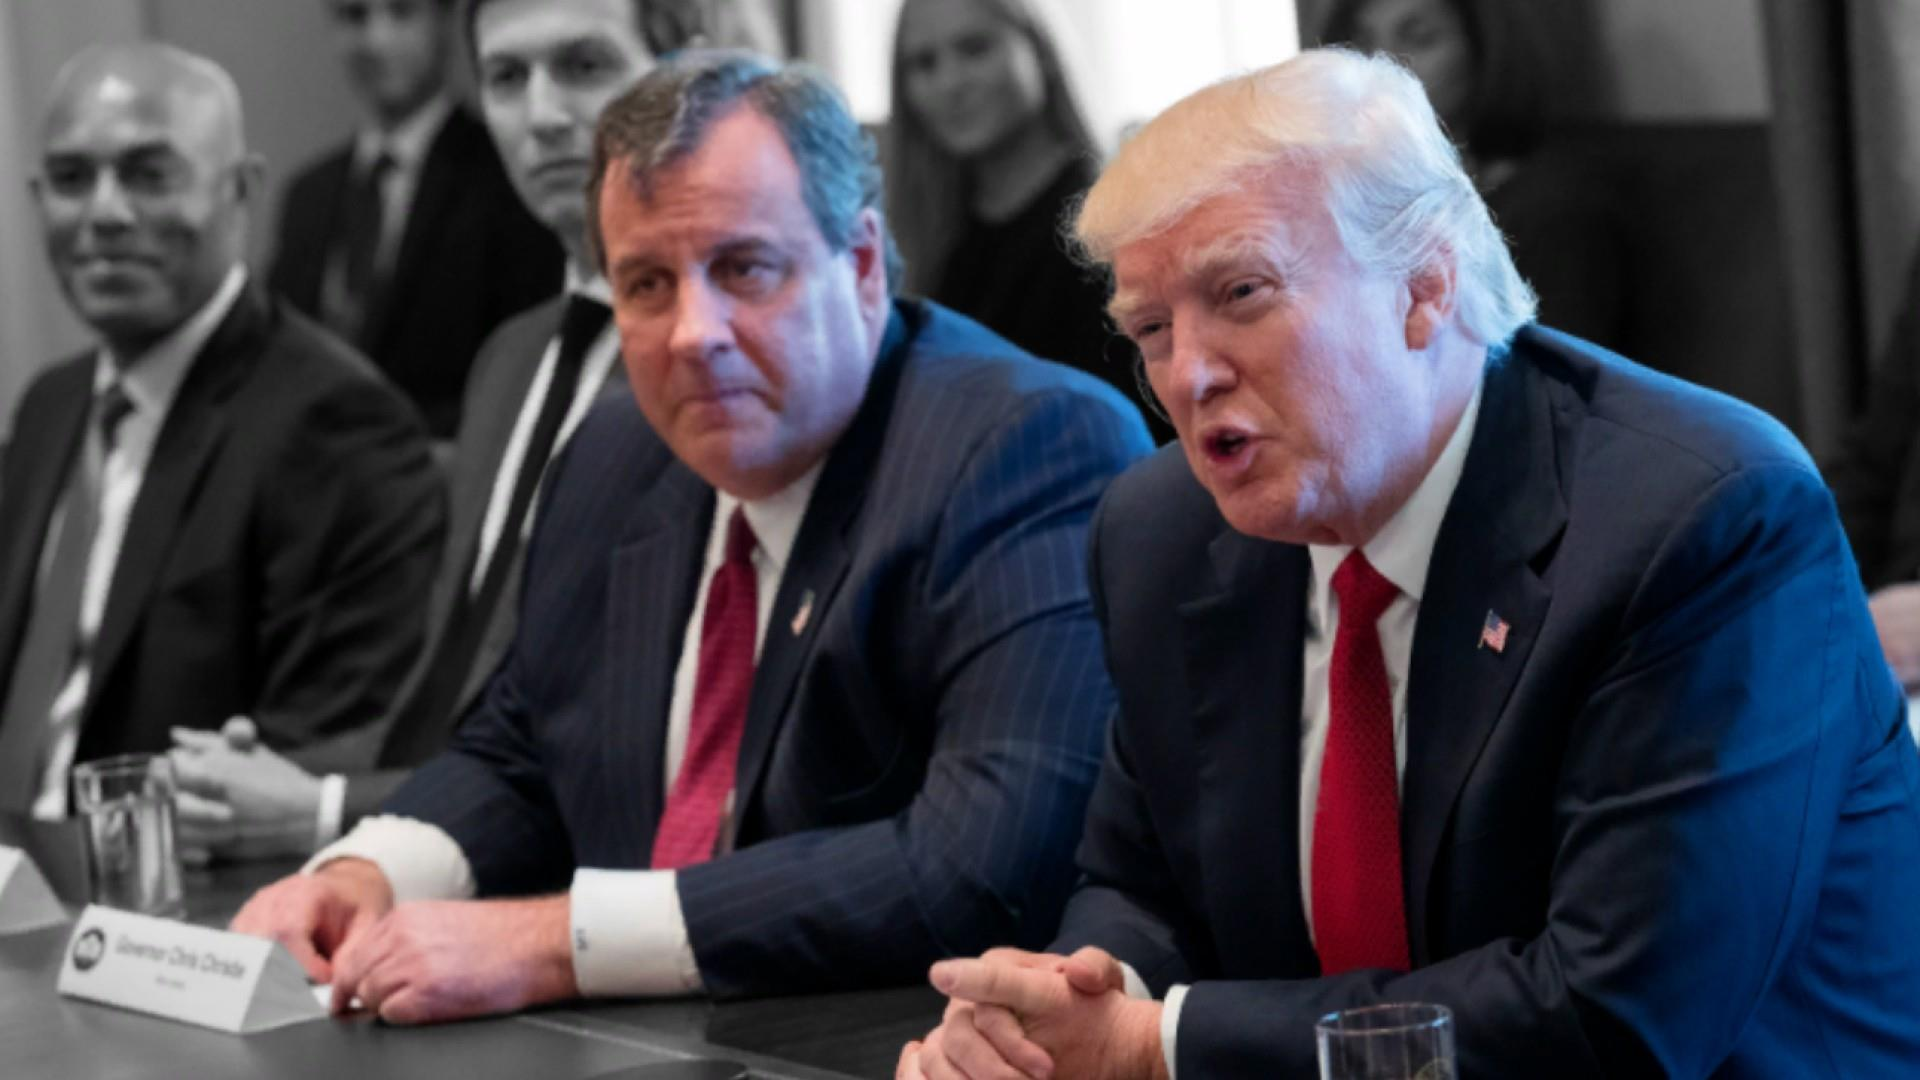 Christie isn't at all curious about the Russians at Trump's 2016 RNC